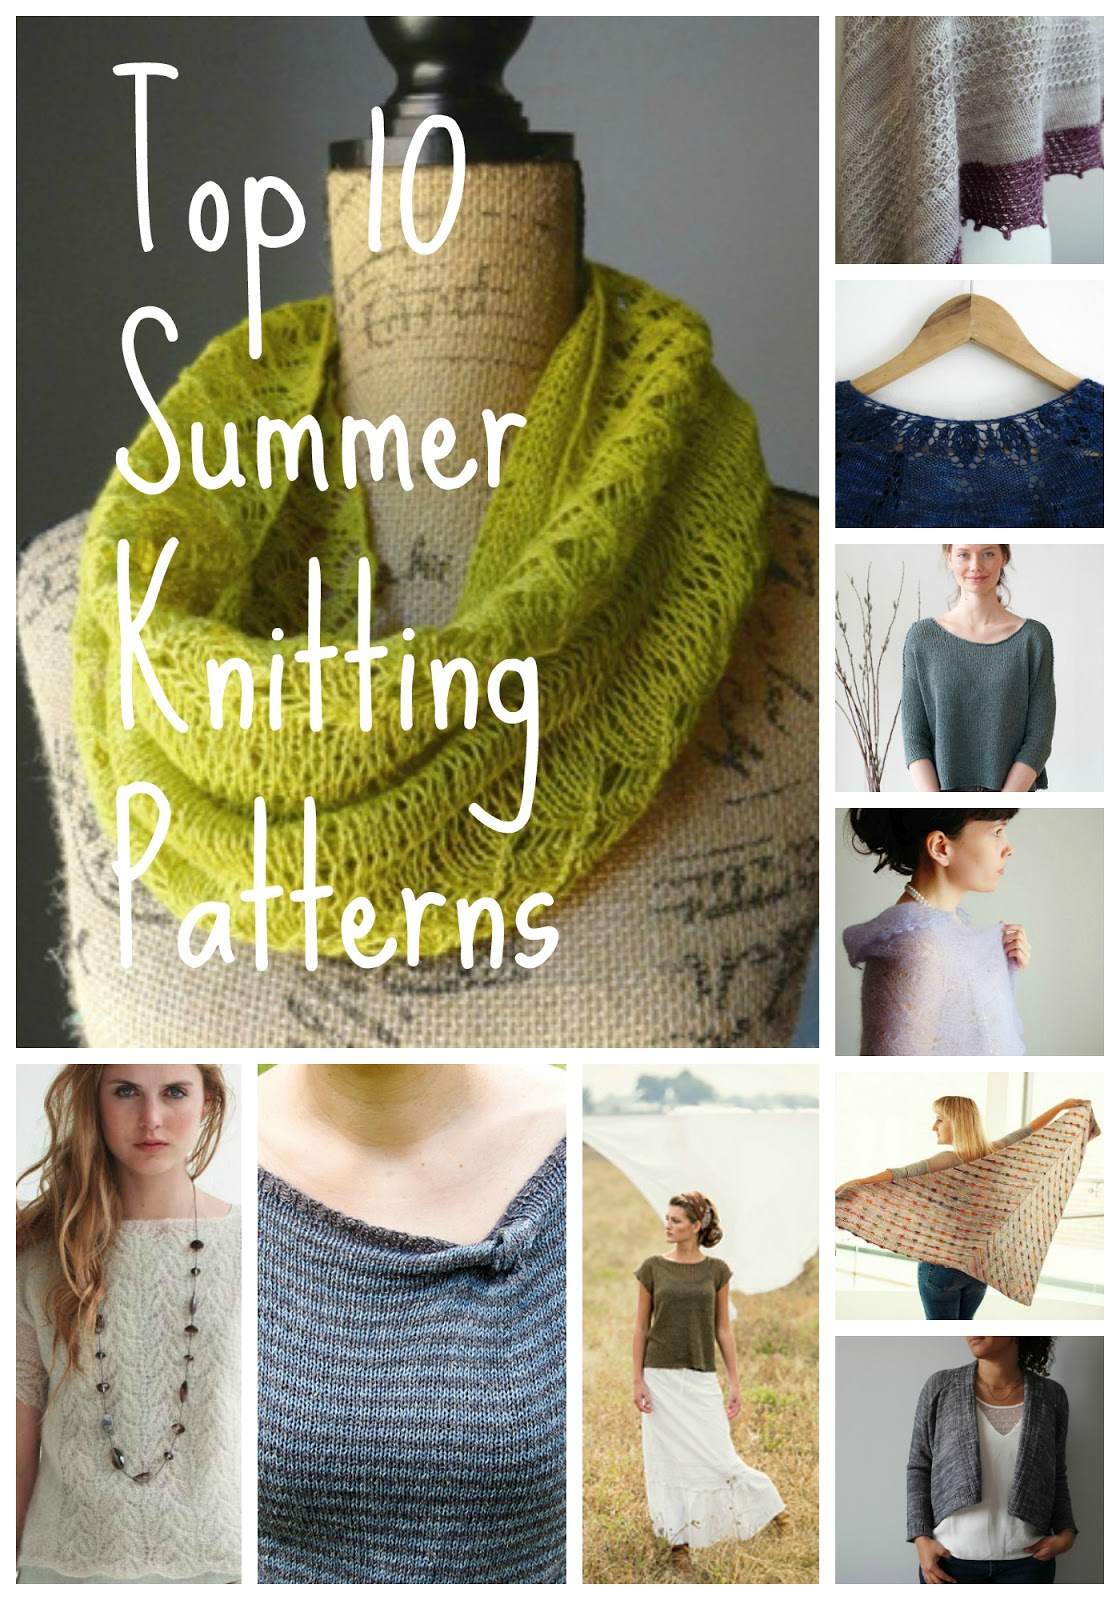 Summer Knitting Patterns : littletheorem: Top Ten Summer Knitting Patterns